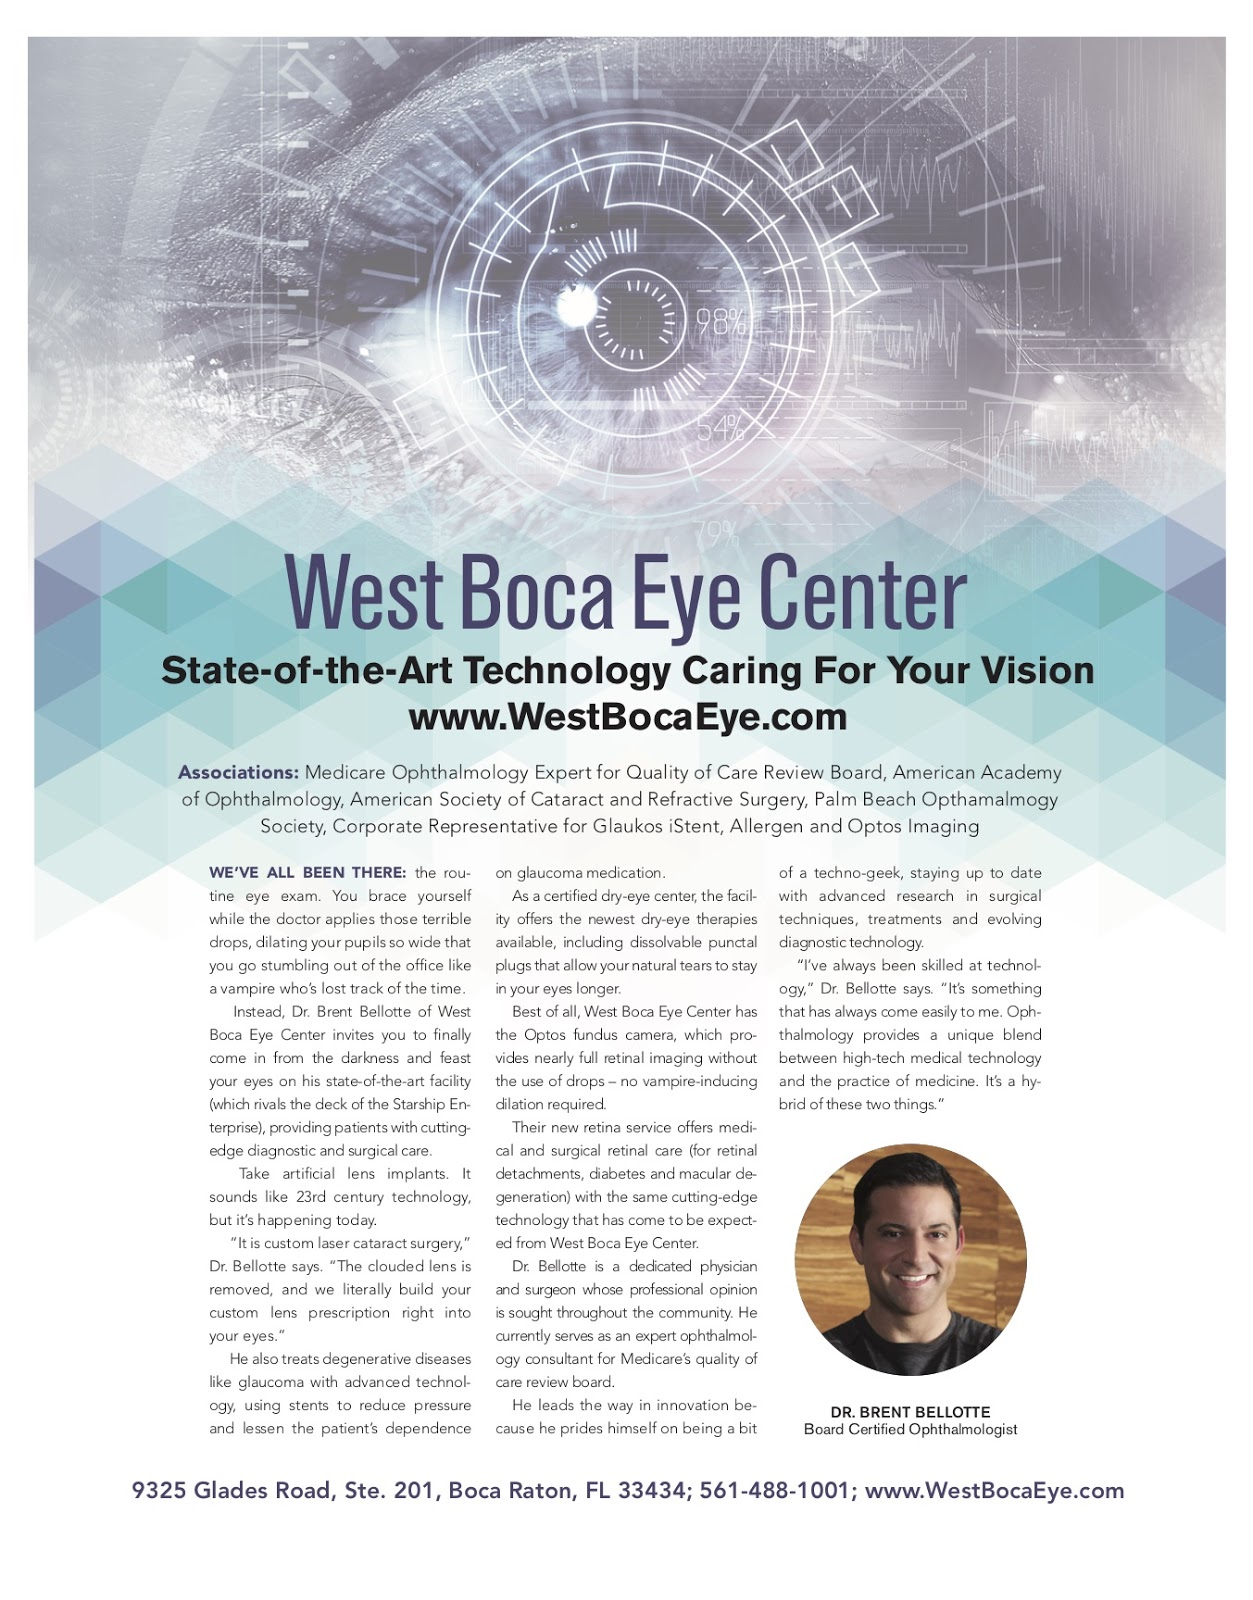 State-of-the-Art Technology Caring For Your Vision